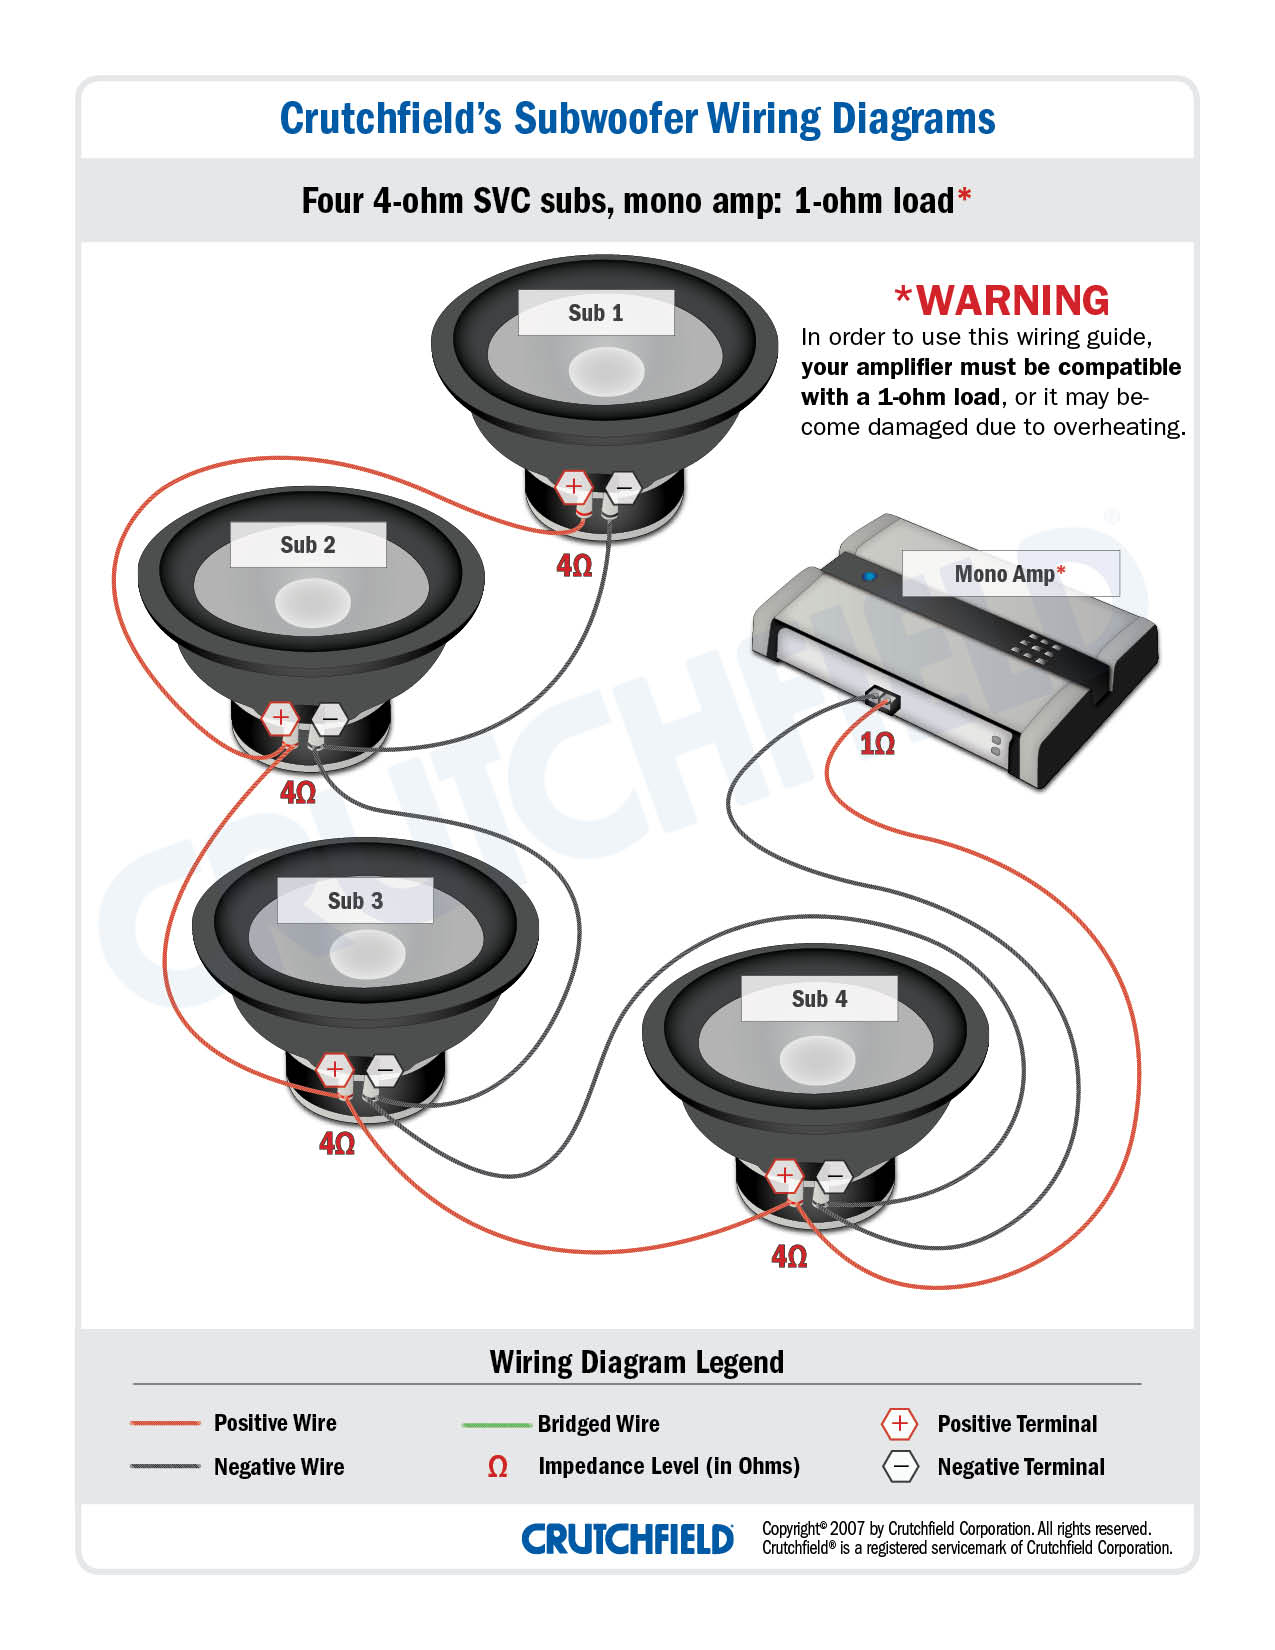 Wiring Subwoofers U2014 What U0026 39 S All This About Ohms Manual Guide